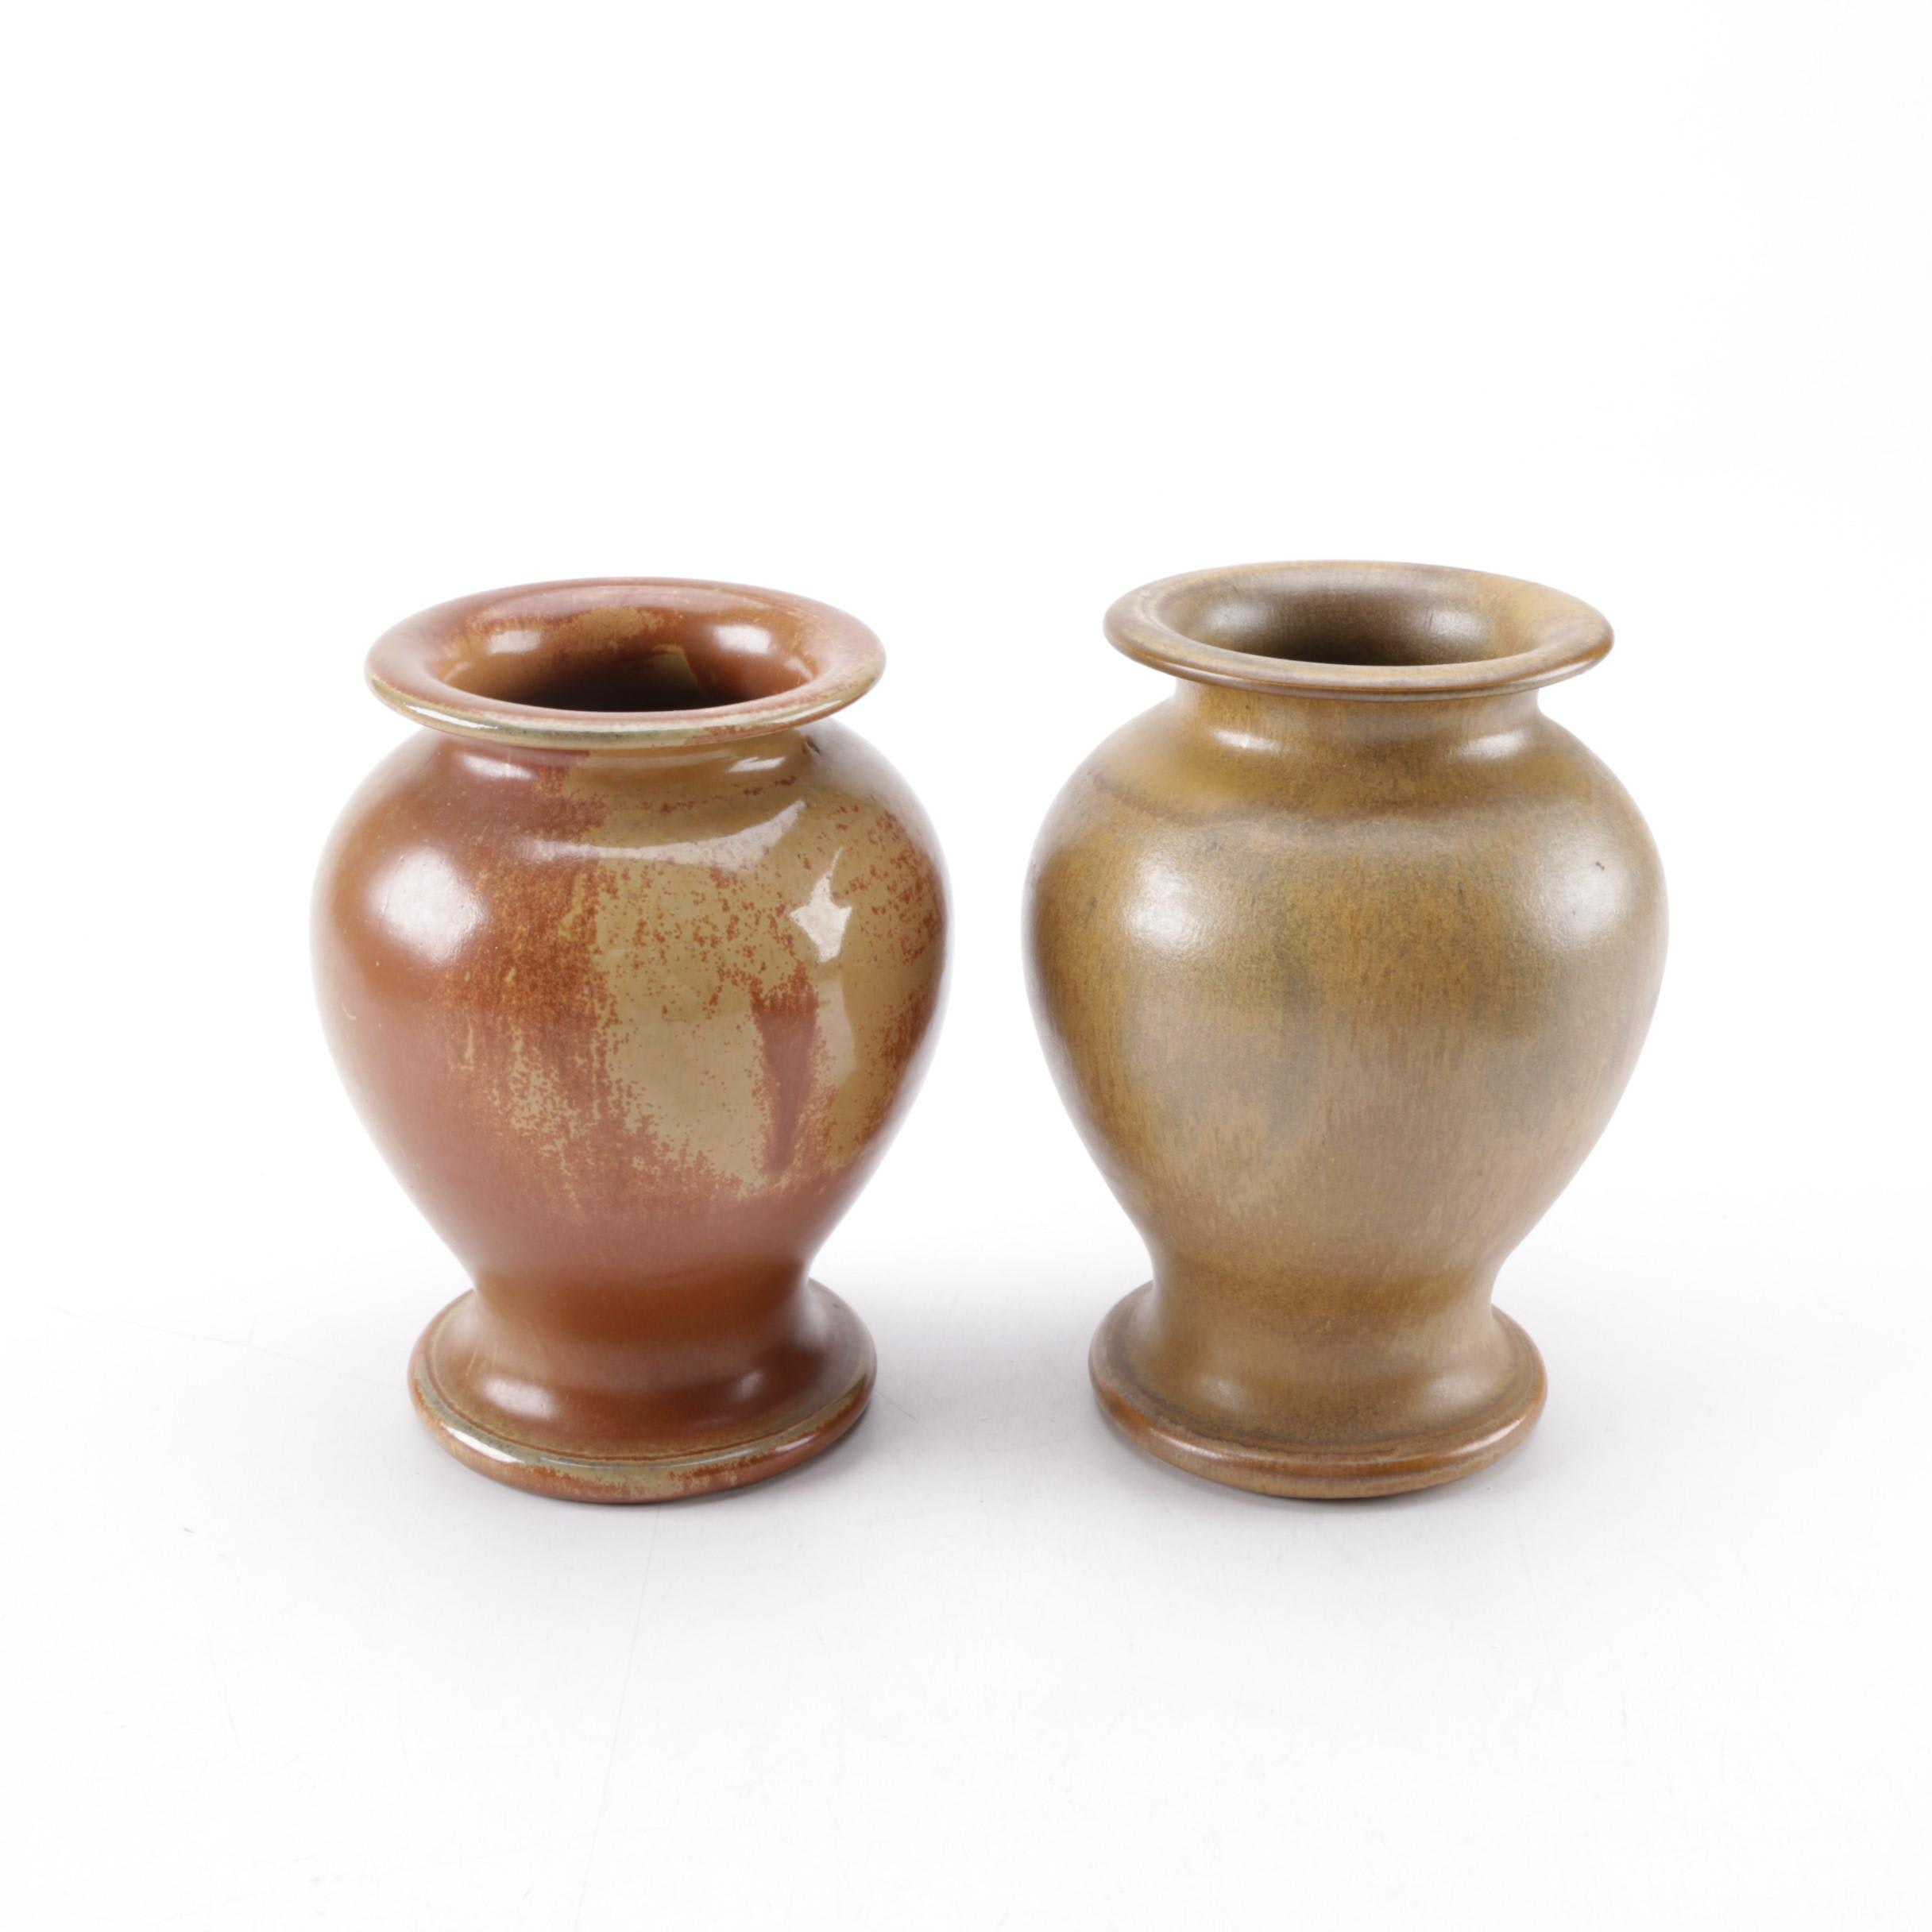 Pair of GA Art Pottery Wheel Thrown Vessels